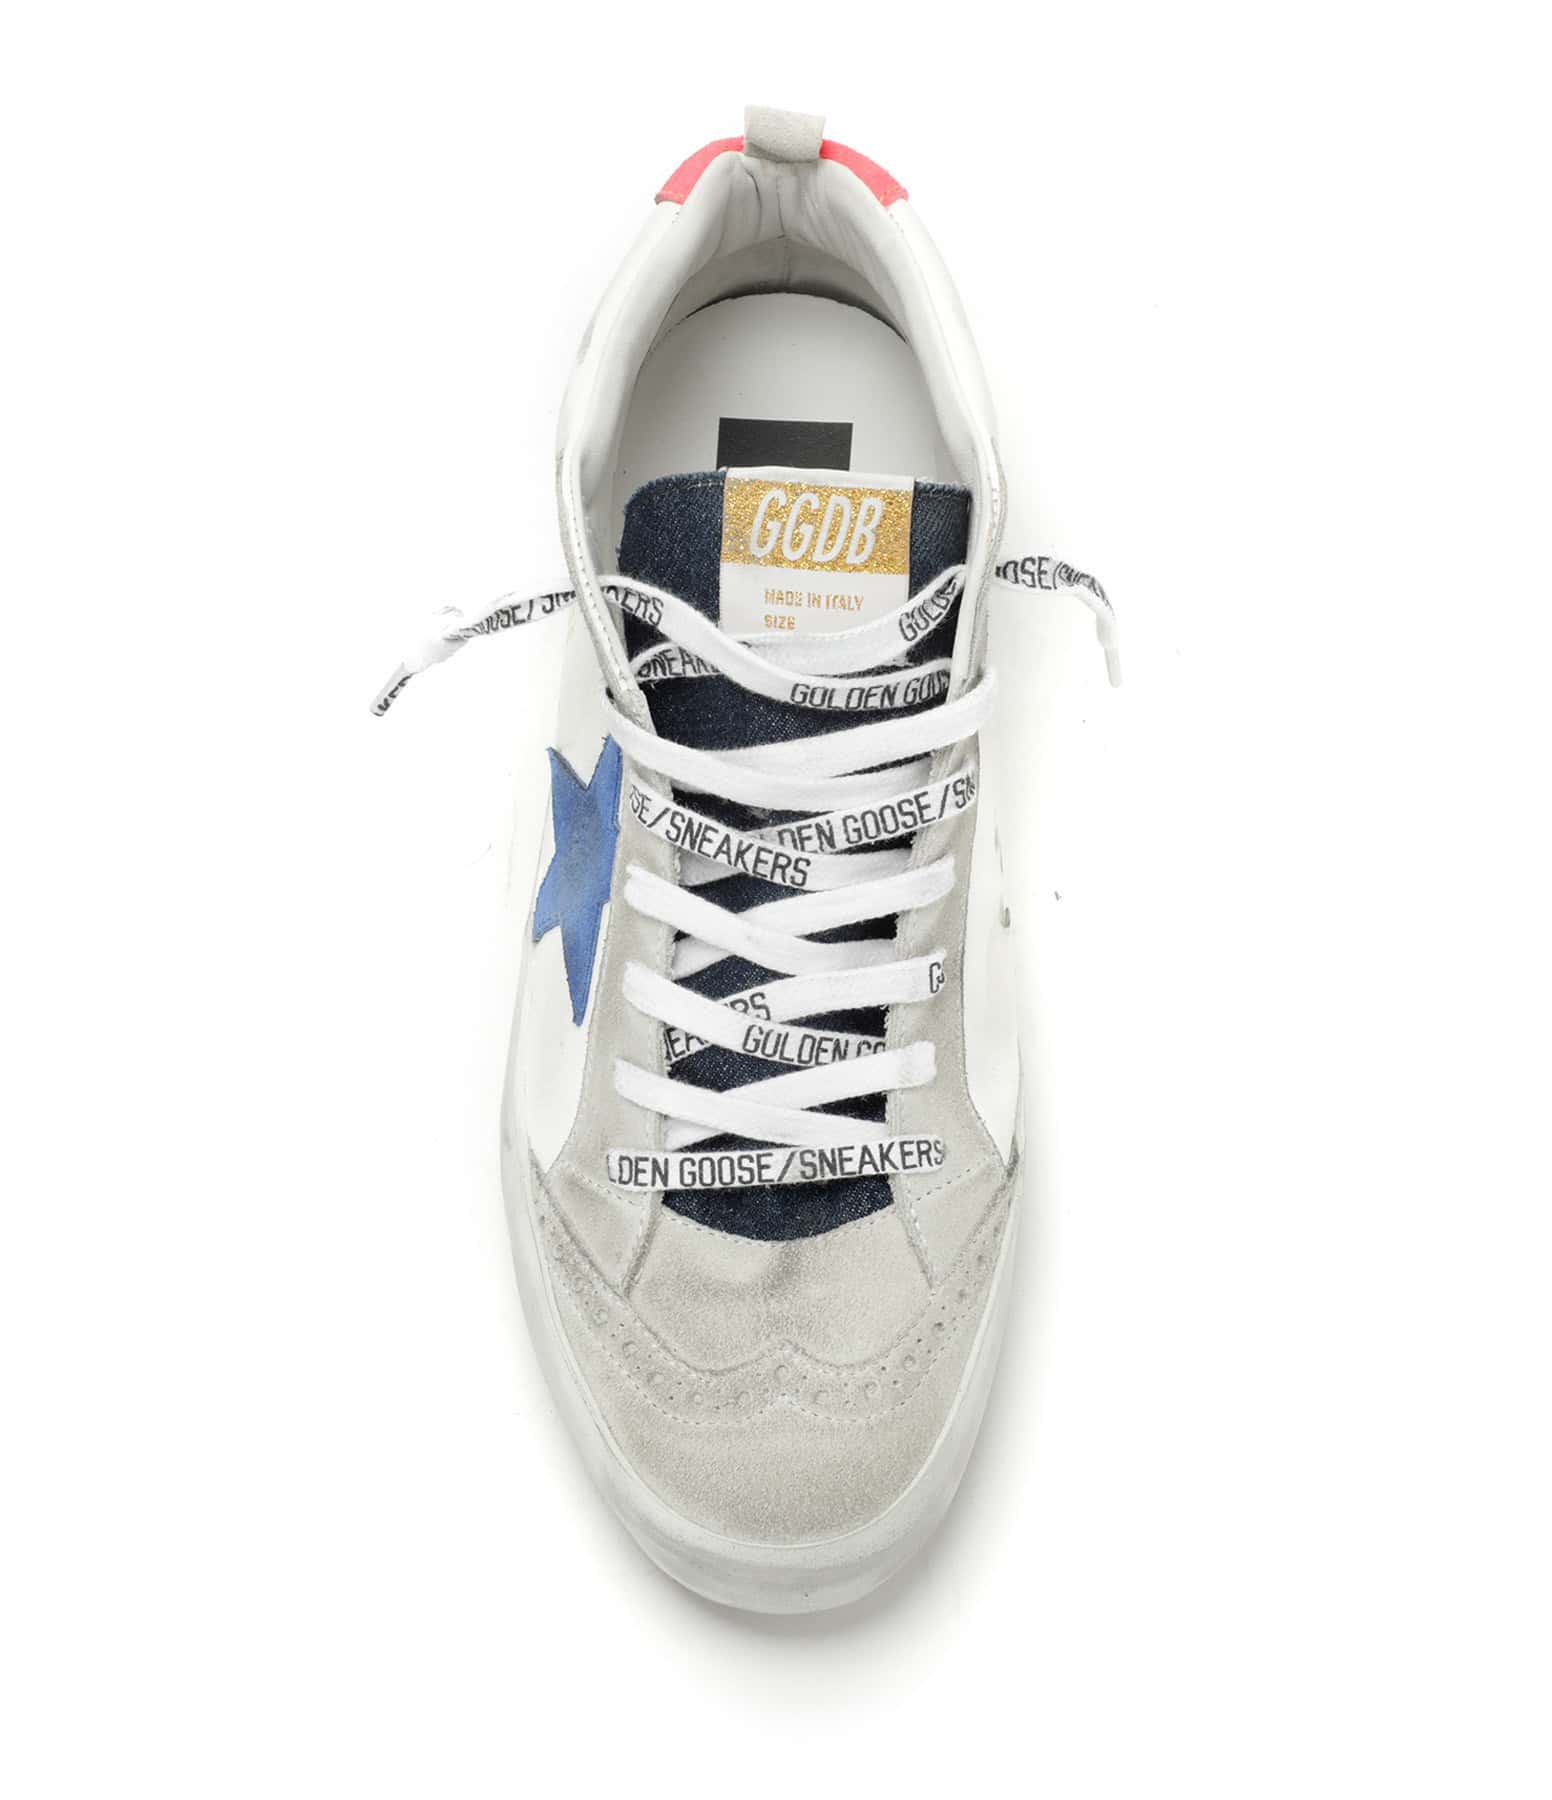 GOLDEN GOOSE - Baskets Mid Star Cuir Suédé Denim Ice Bleu